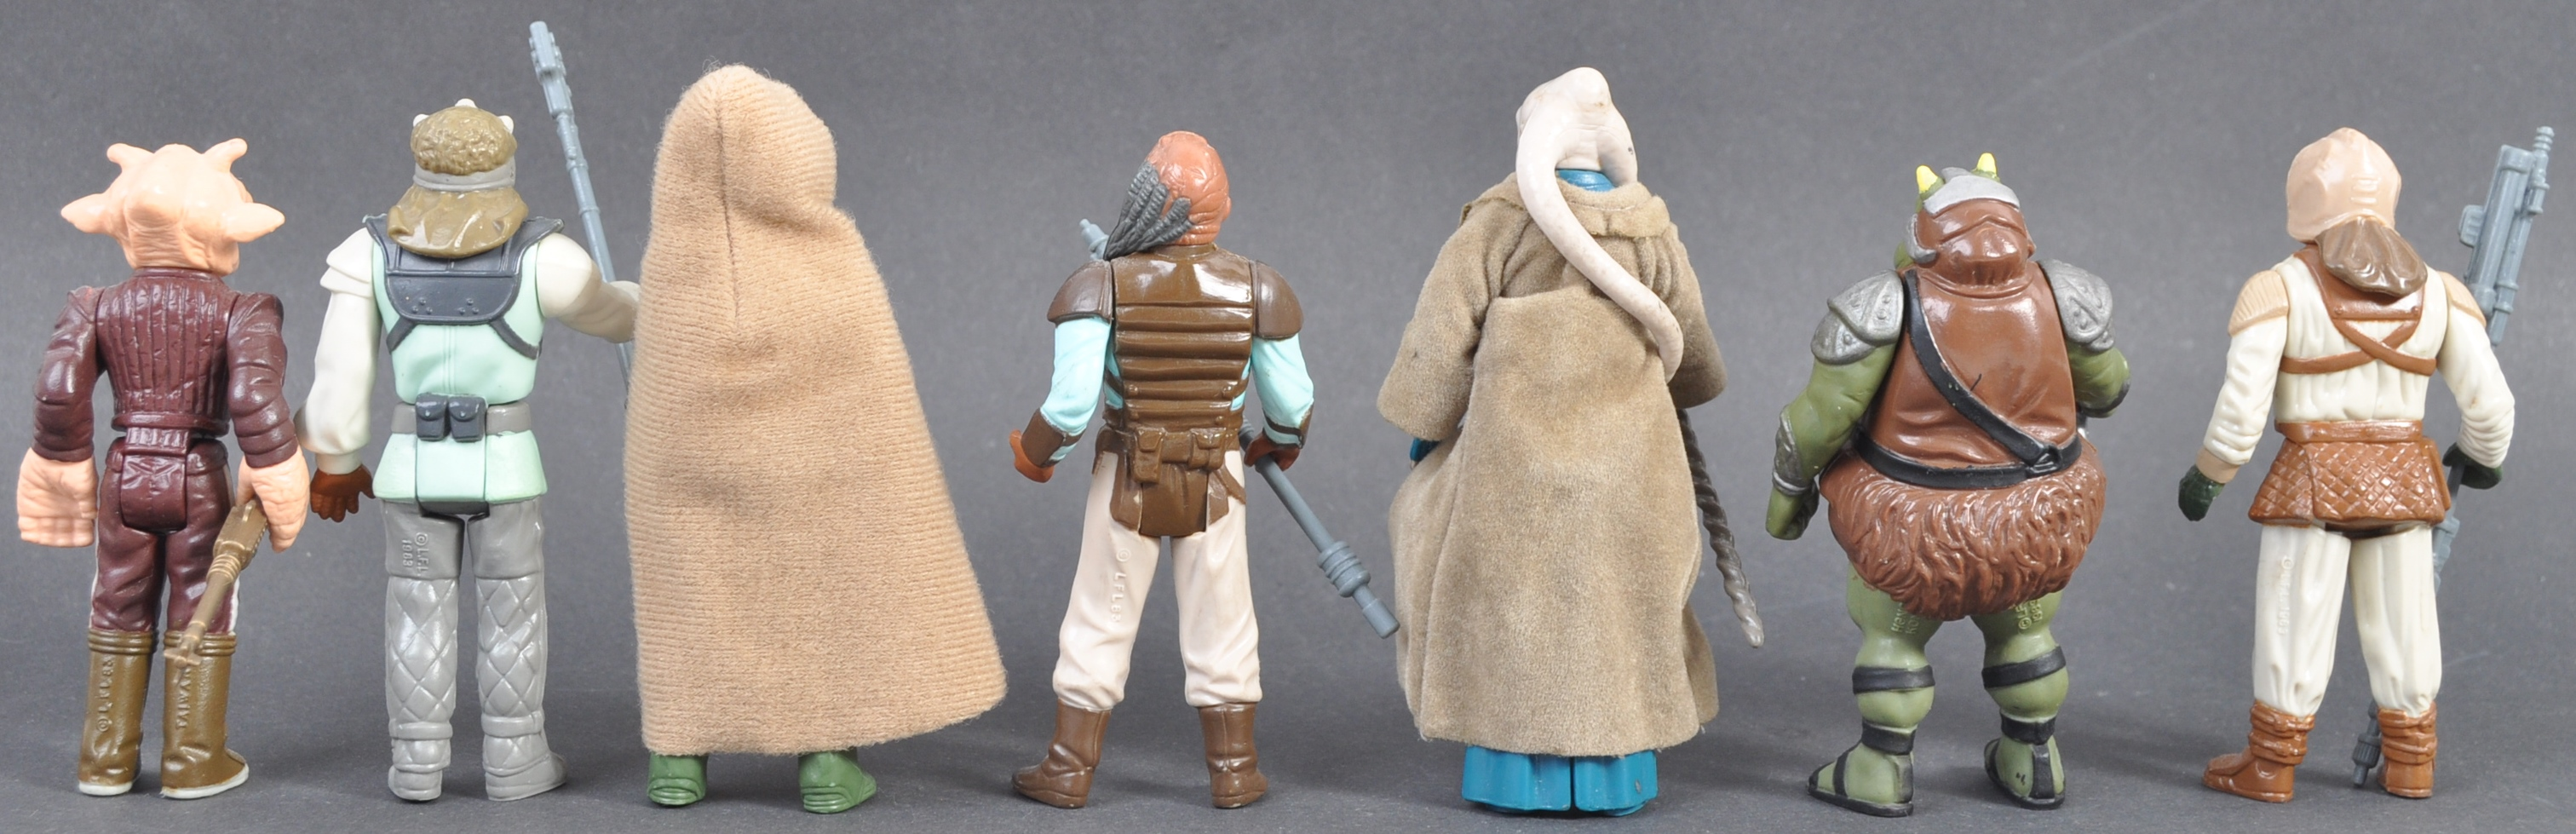 STAR WARS ACTION FIGURES - COLLECTION OF ASSORTED - Image 5 of 12